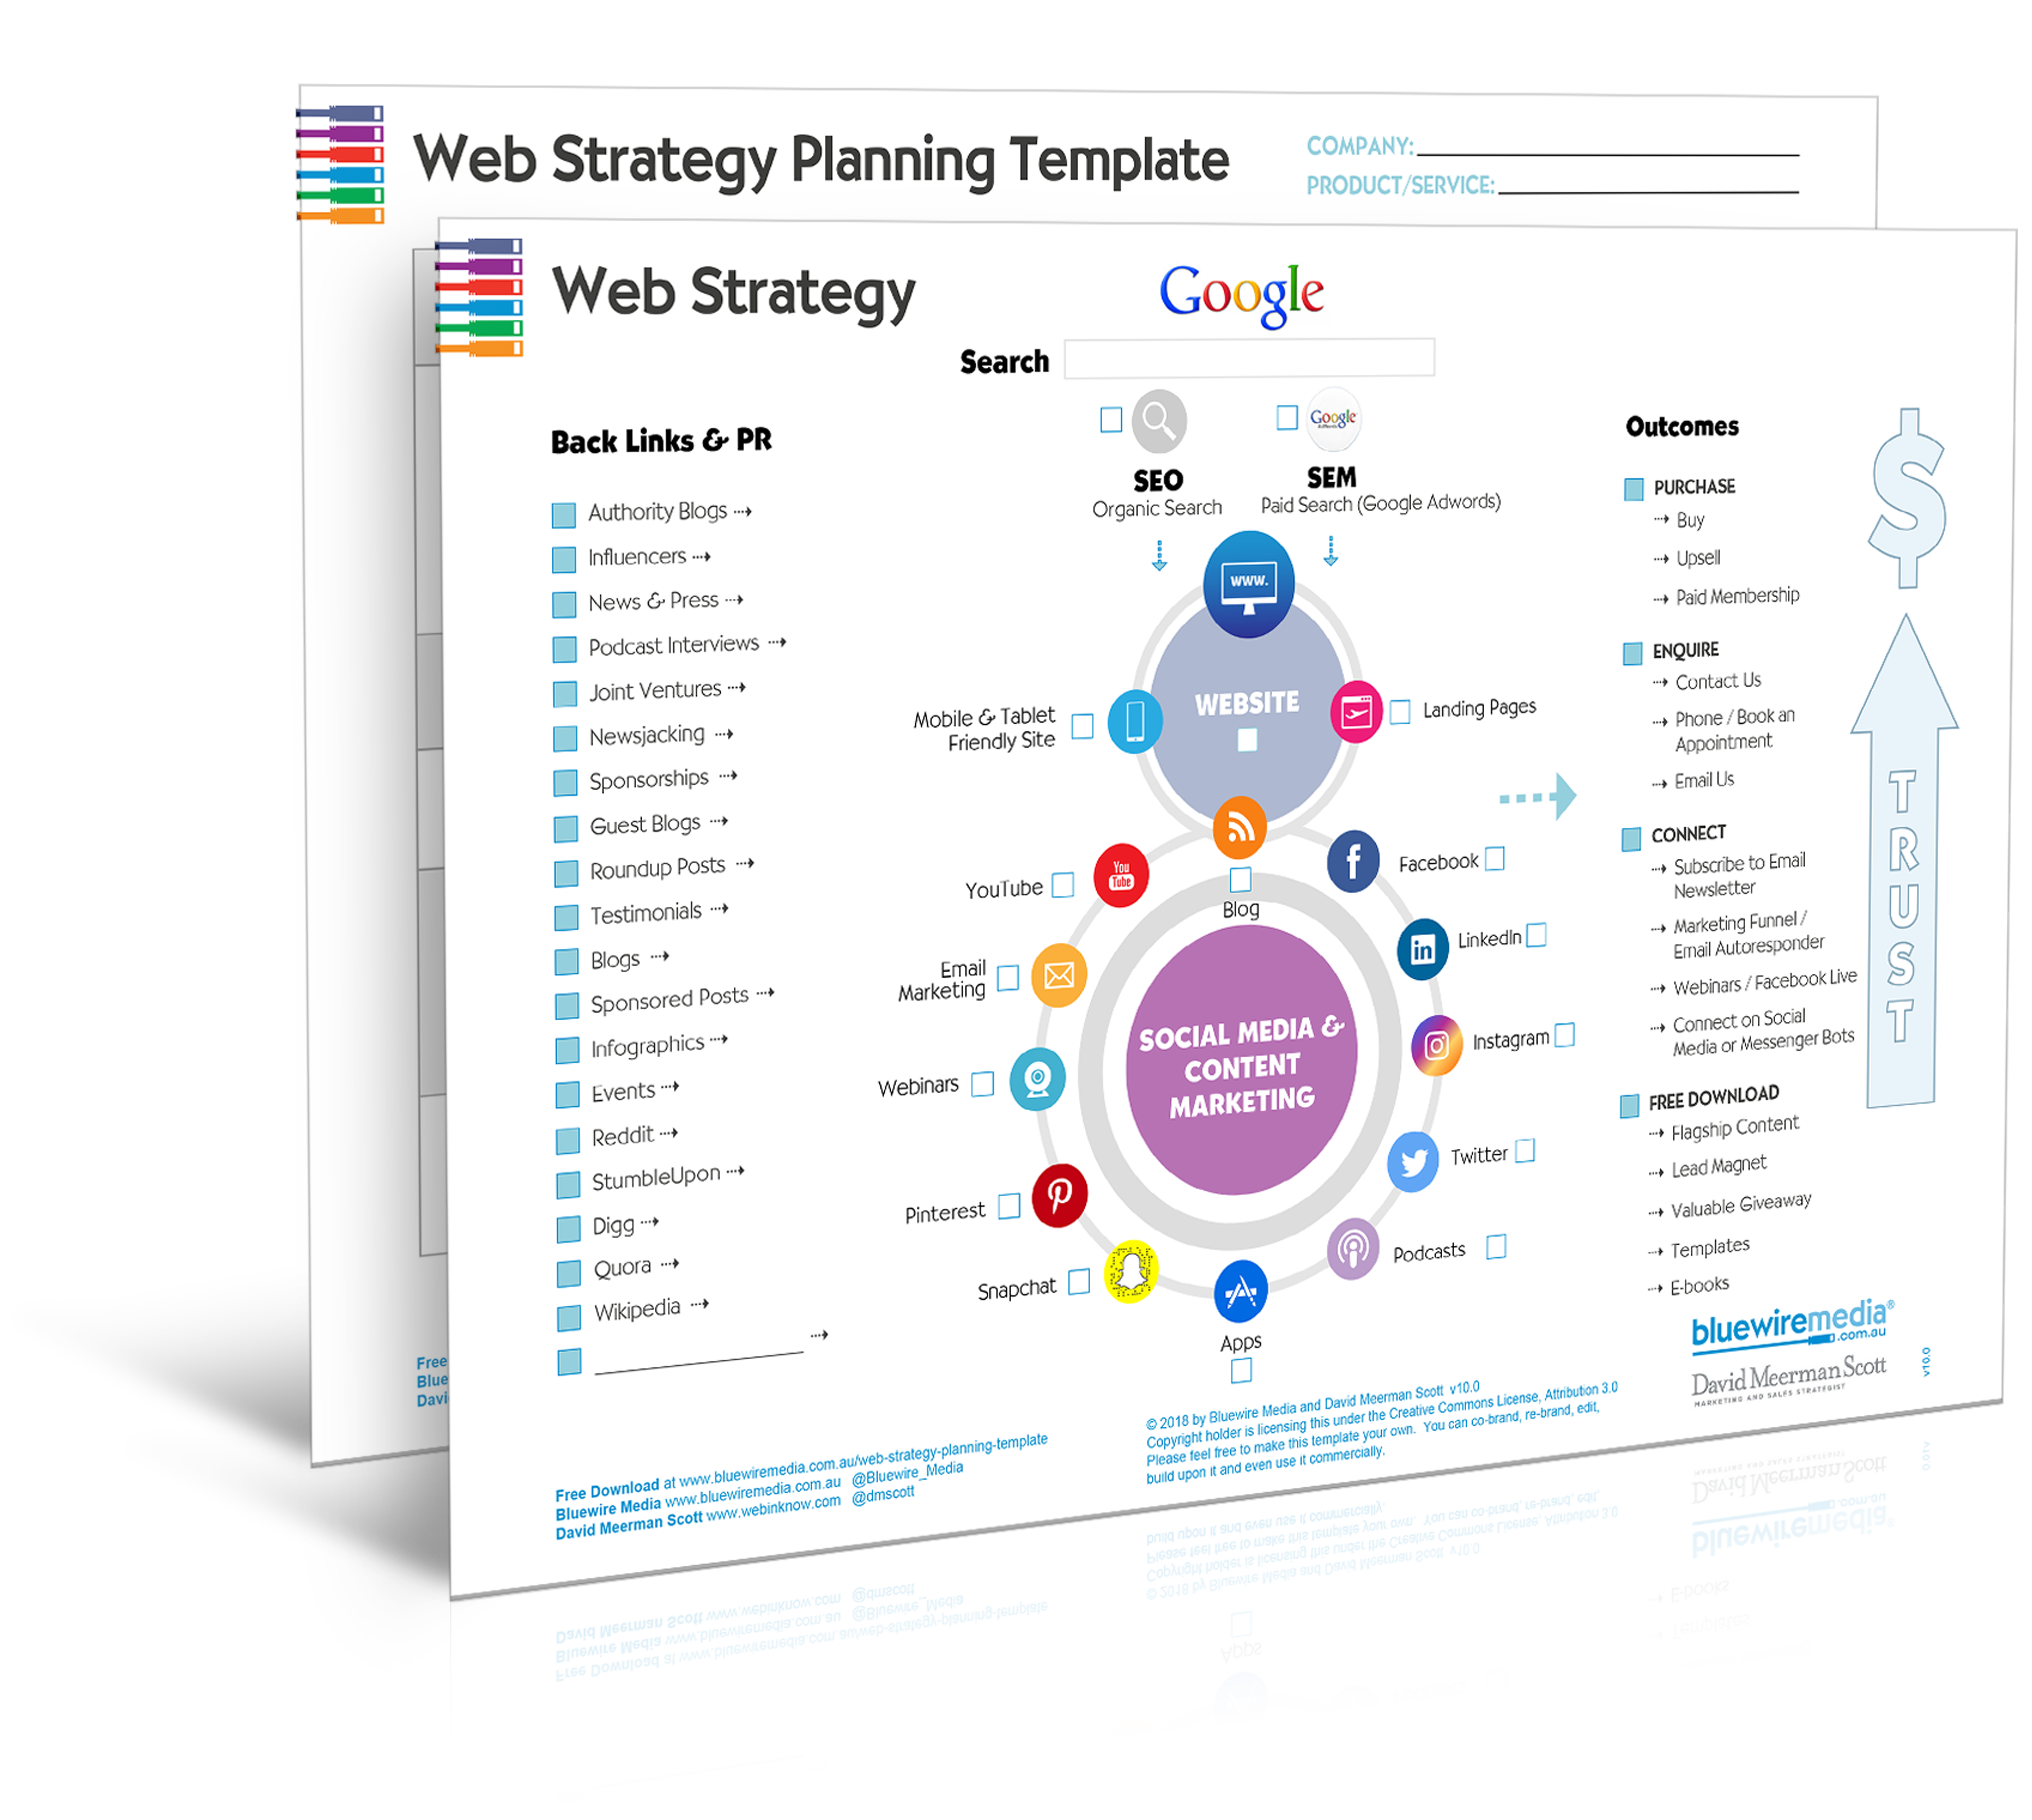 Digital Online Marketing Web Strategy Planning Template 2019